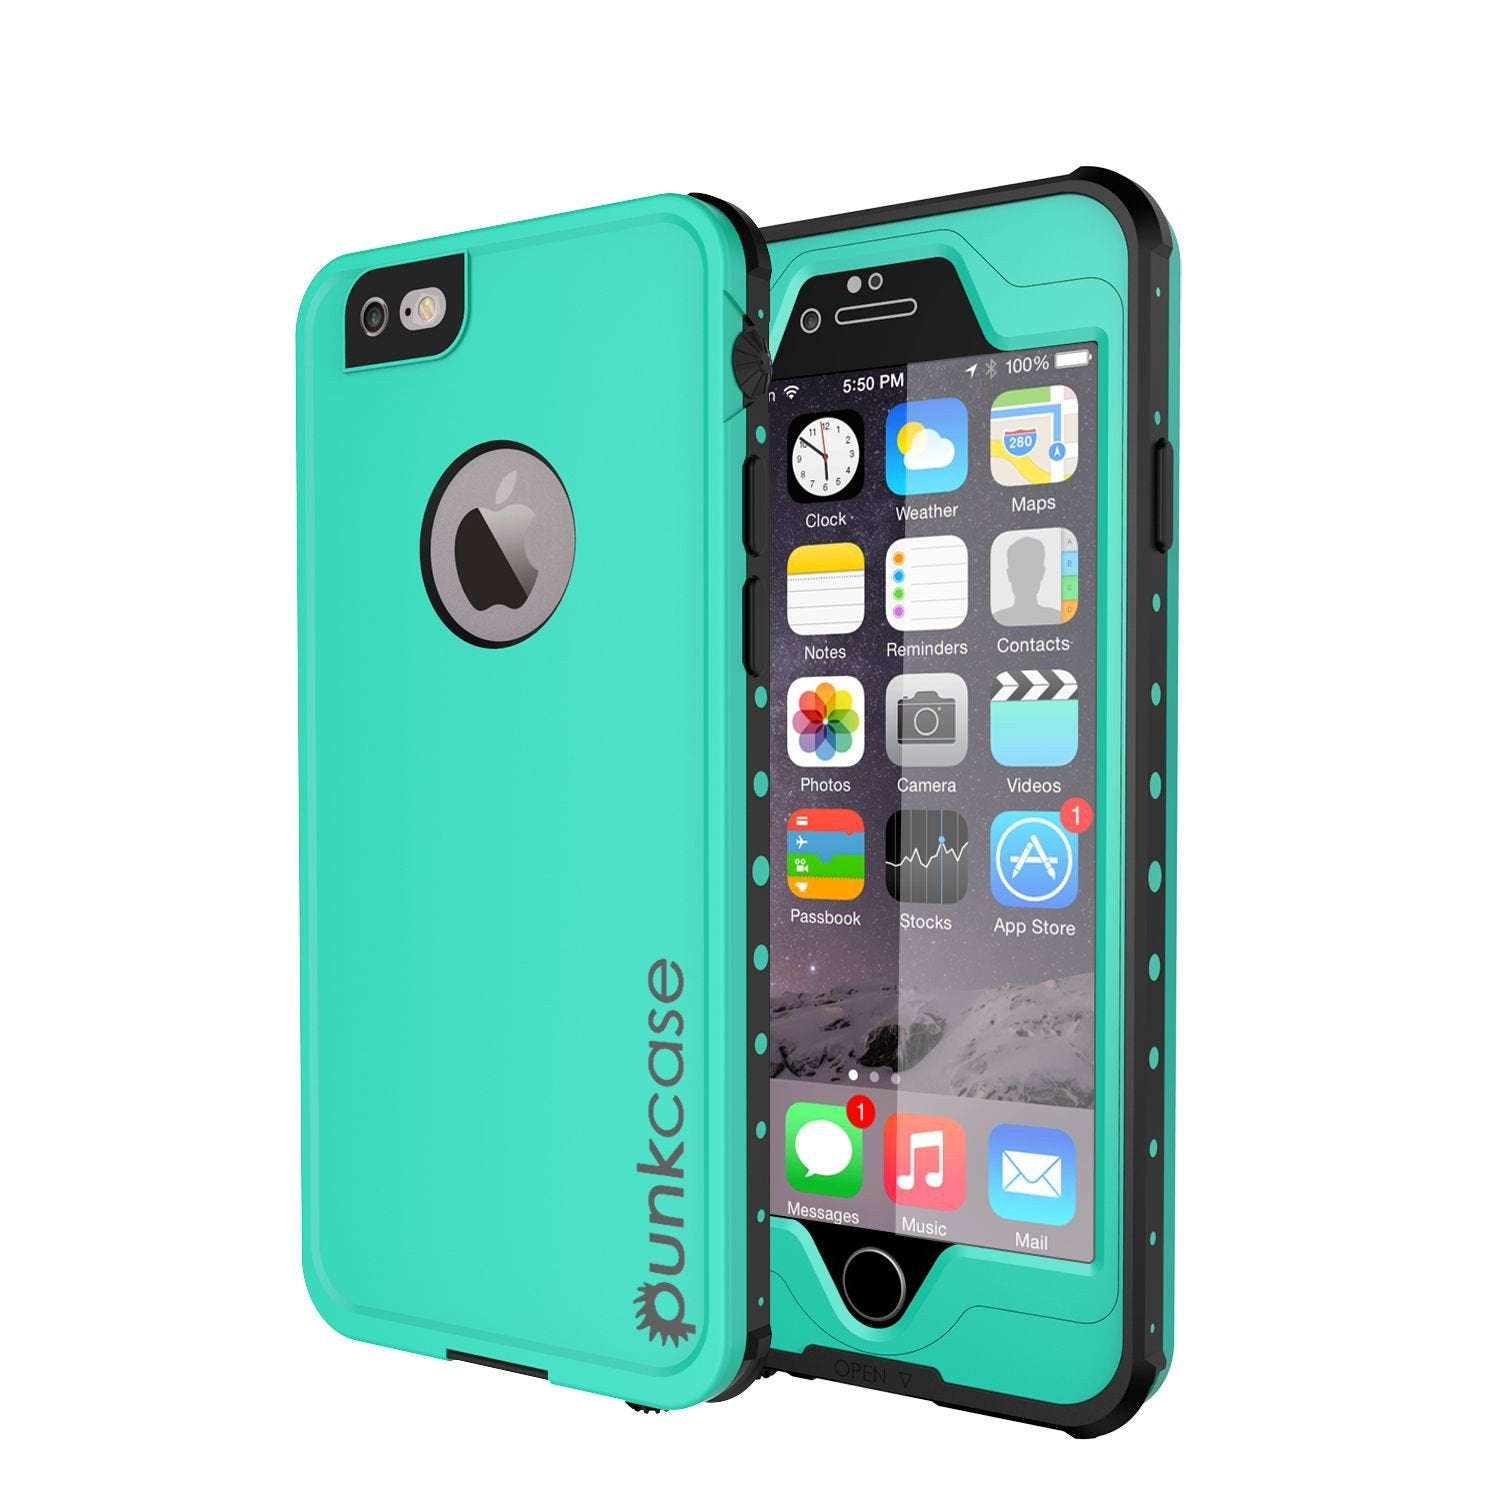 iPhone 6s/6 Waterproof Case, PunkCase StudStar Teal w/ Attached Screen Protector | Lifetime Warranty